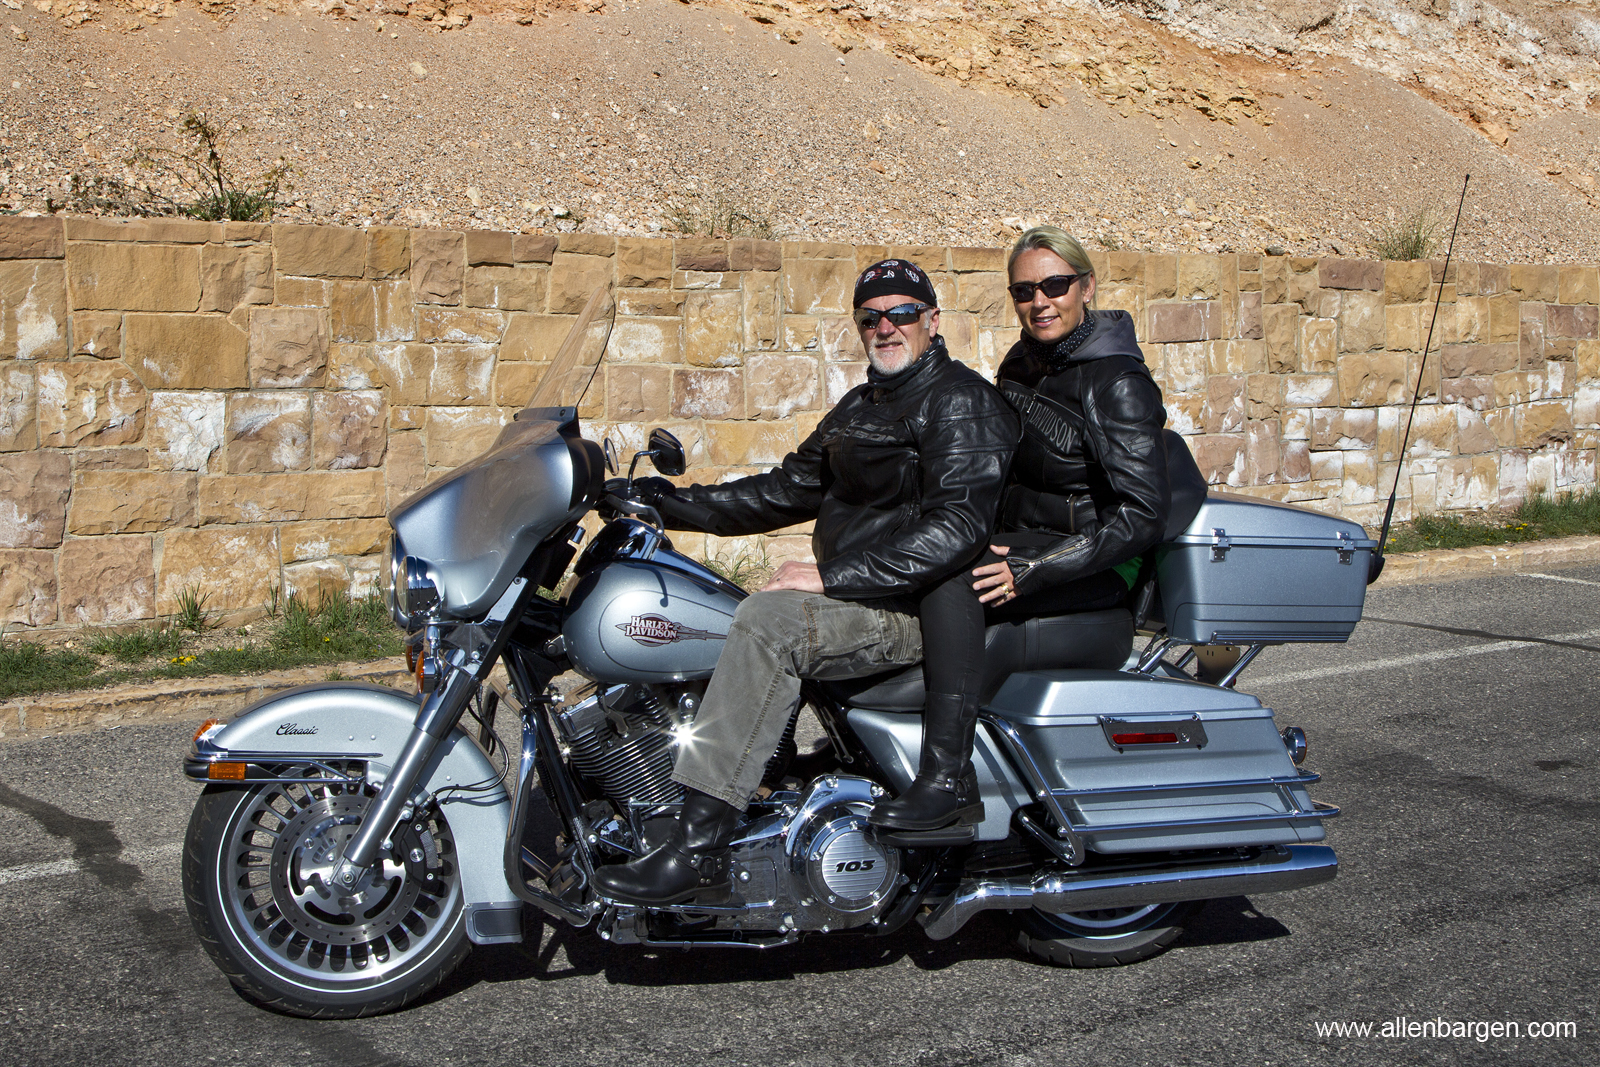 Harley Riders: What's Going On